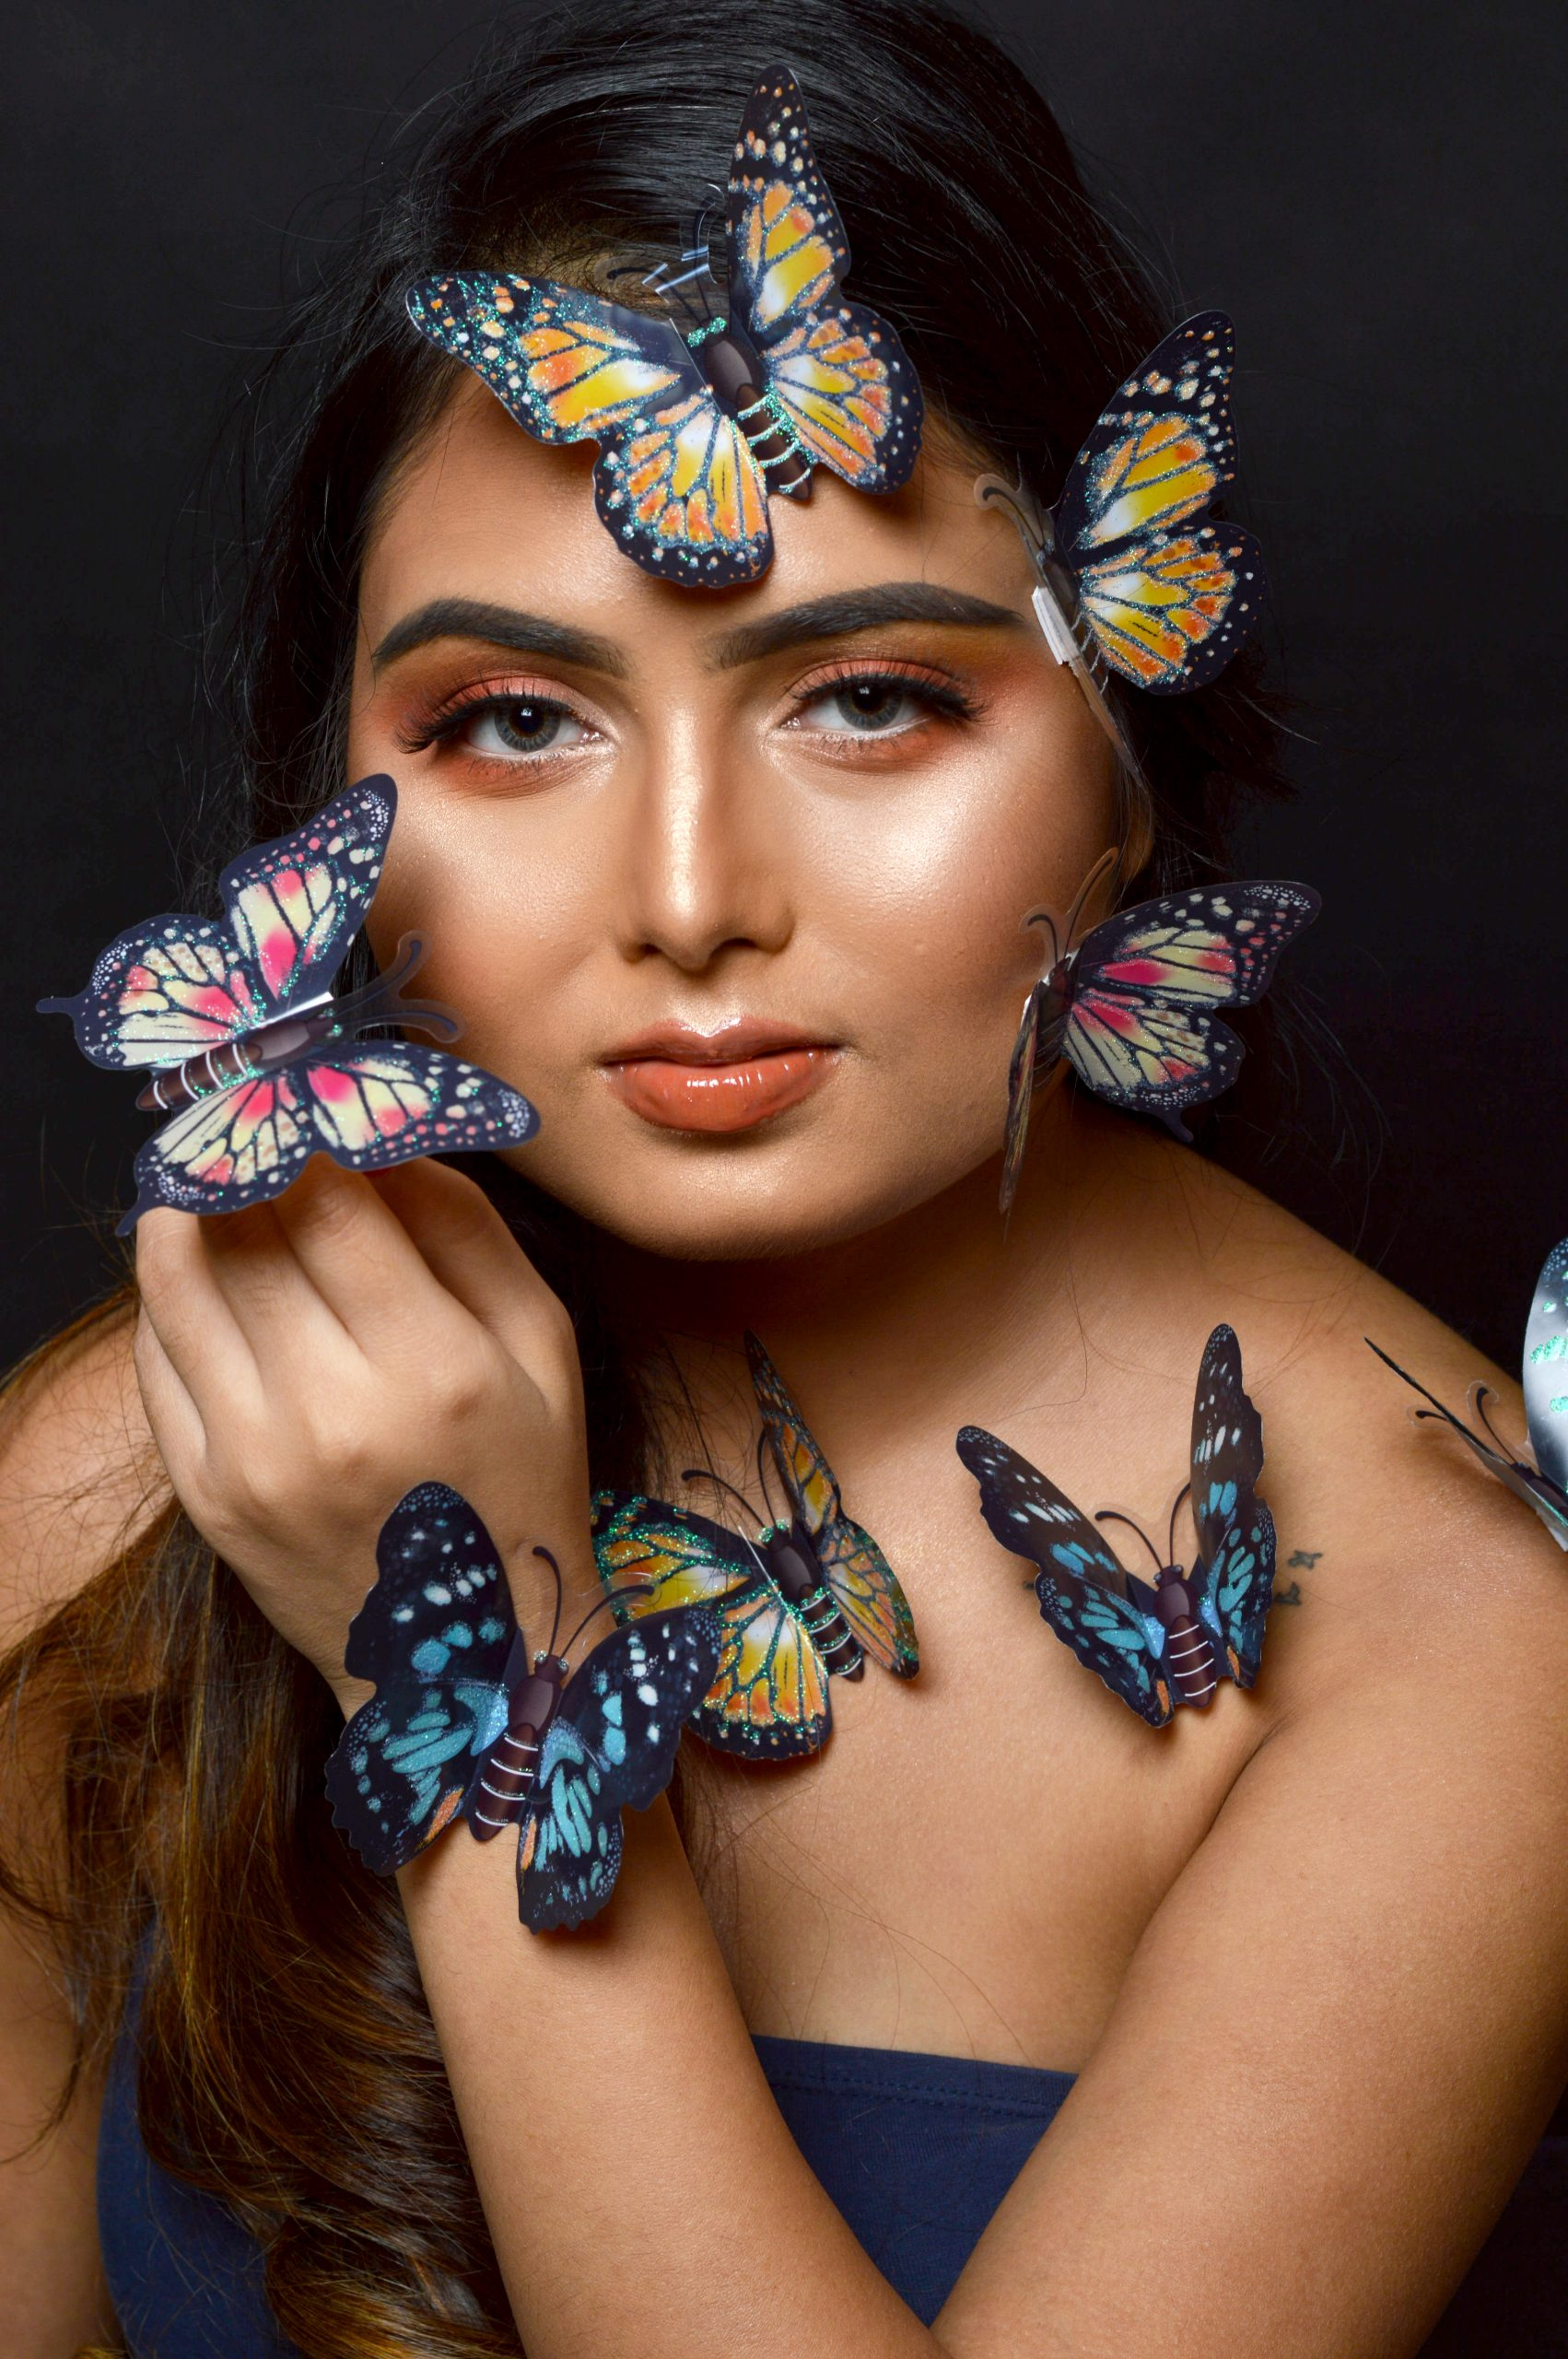 A girl with butterflies